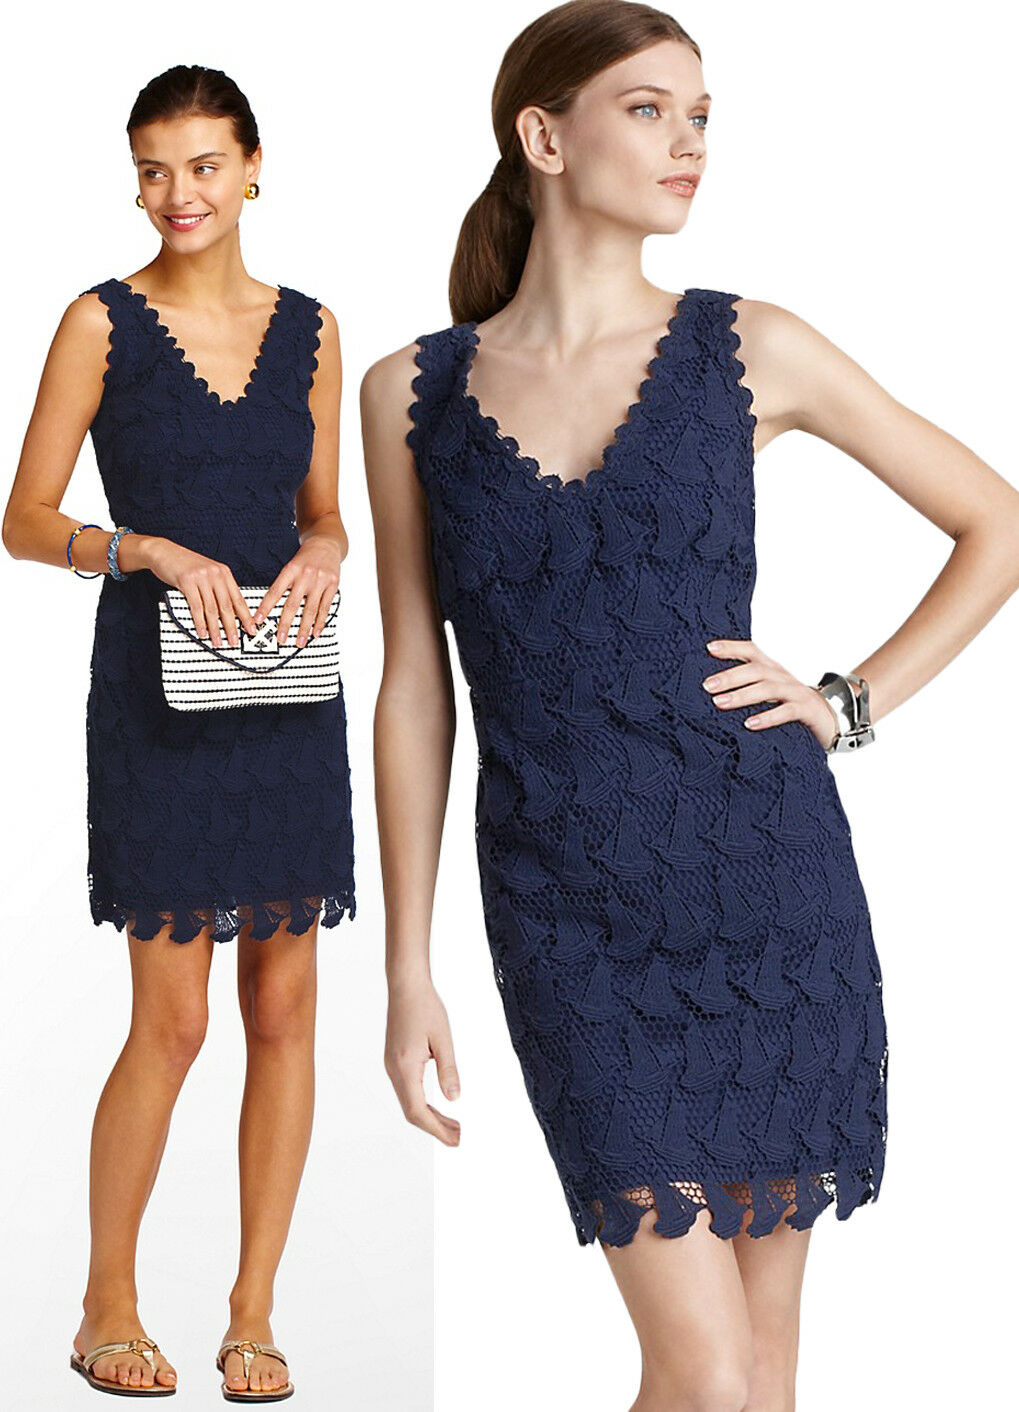 368 Lilly Pulitzer Reeve True Navy Truly Sailboat Boat Lace Dress